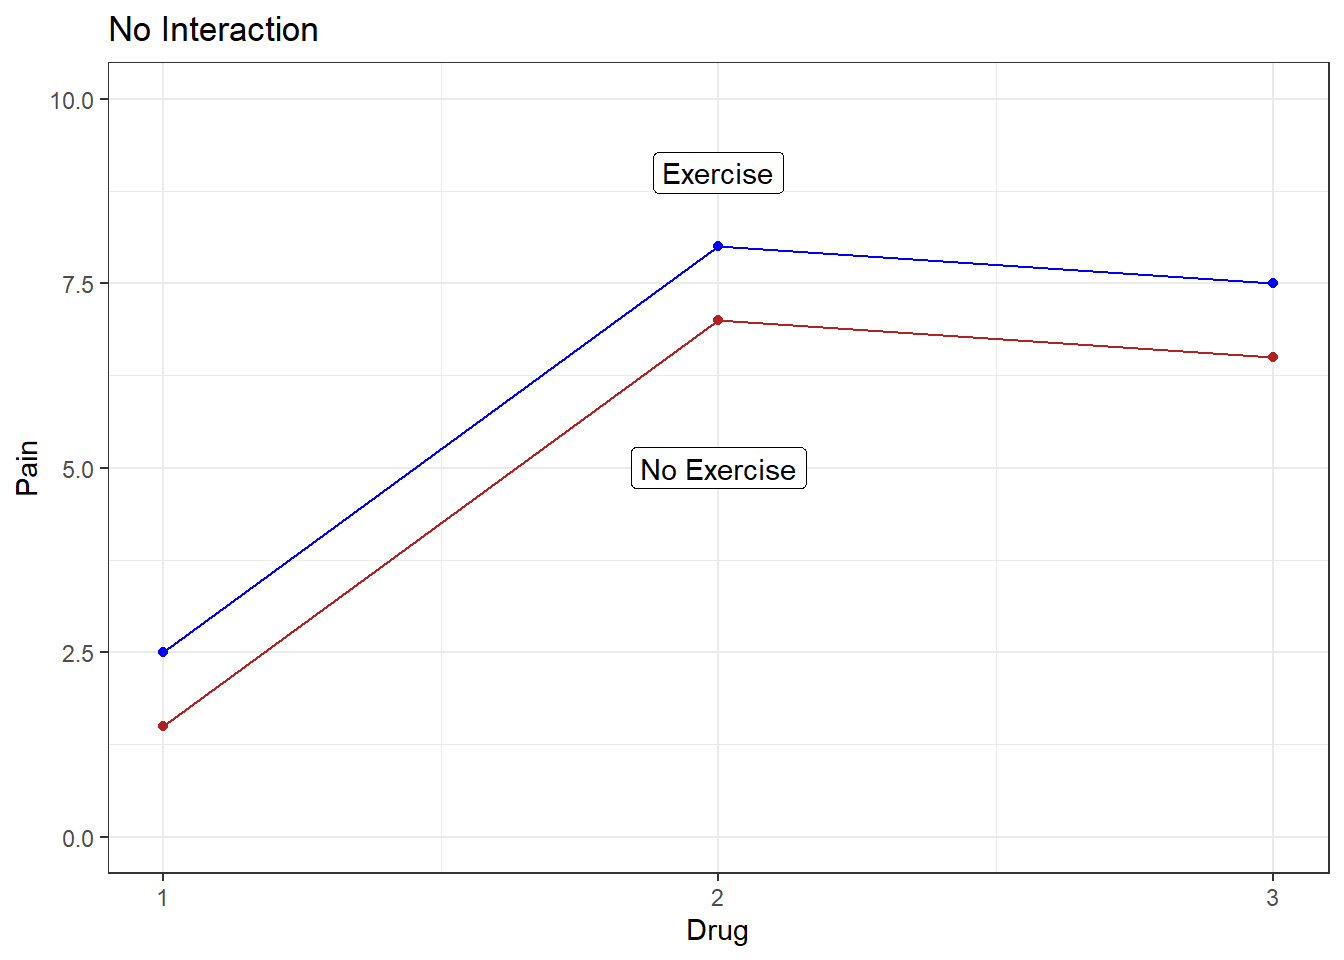 No interaction effect